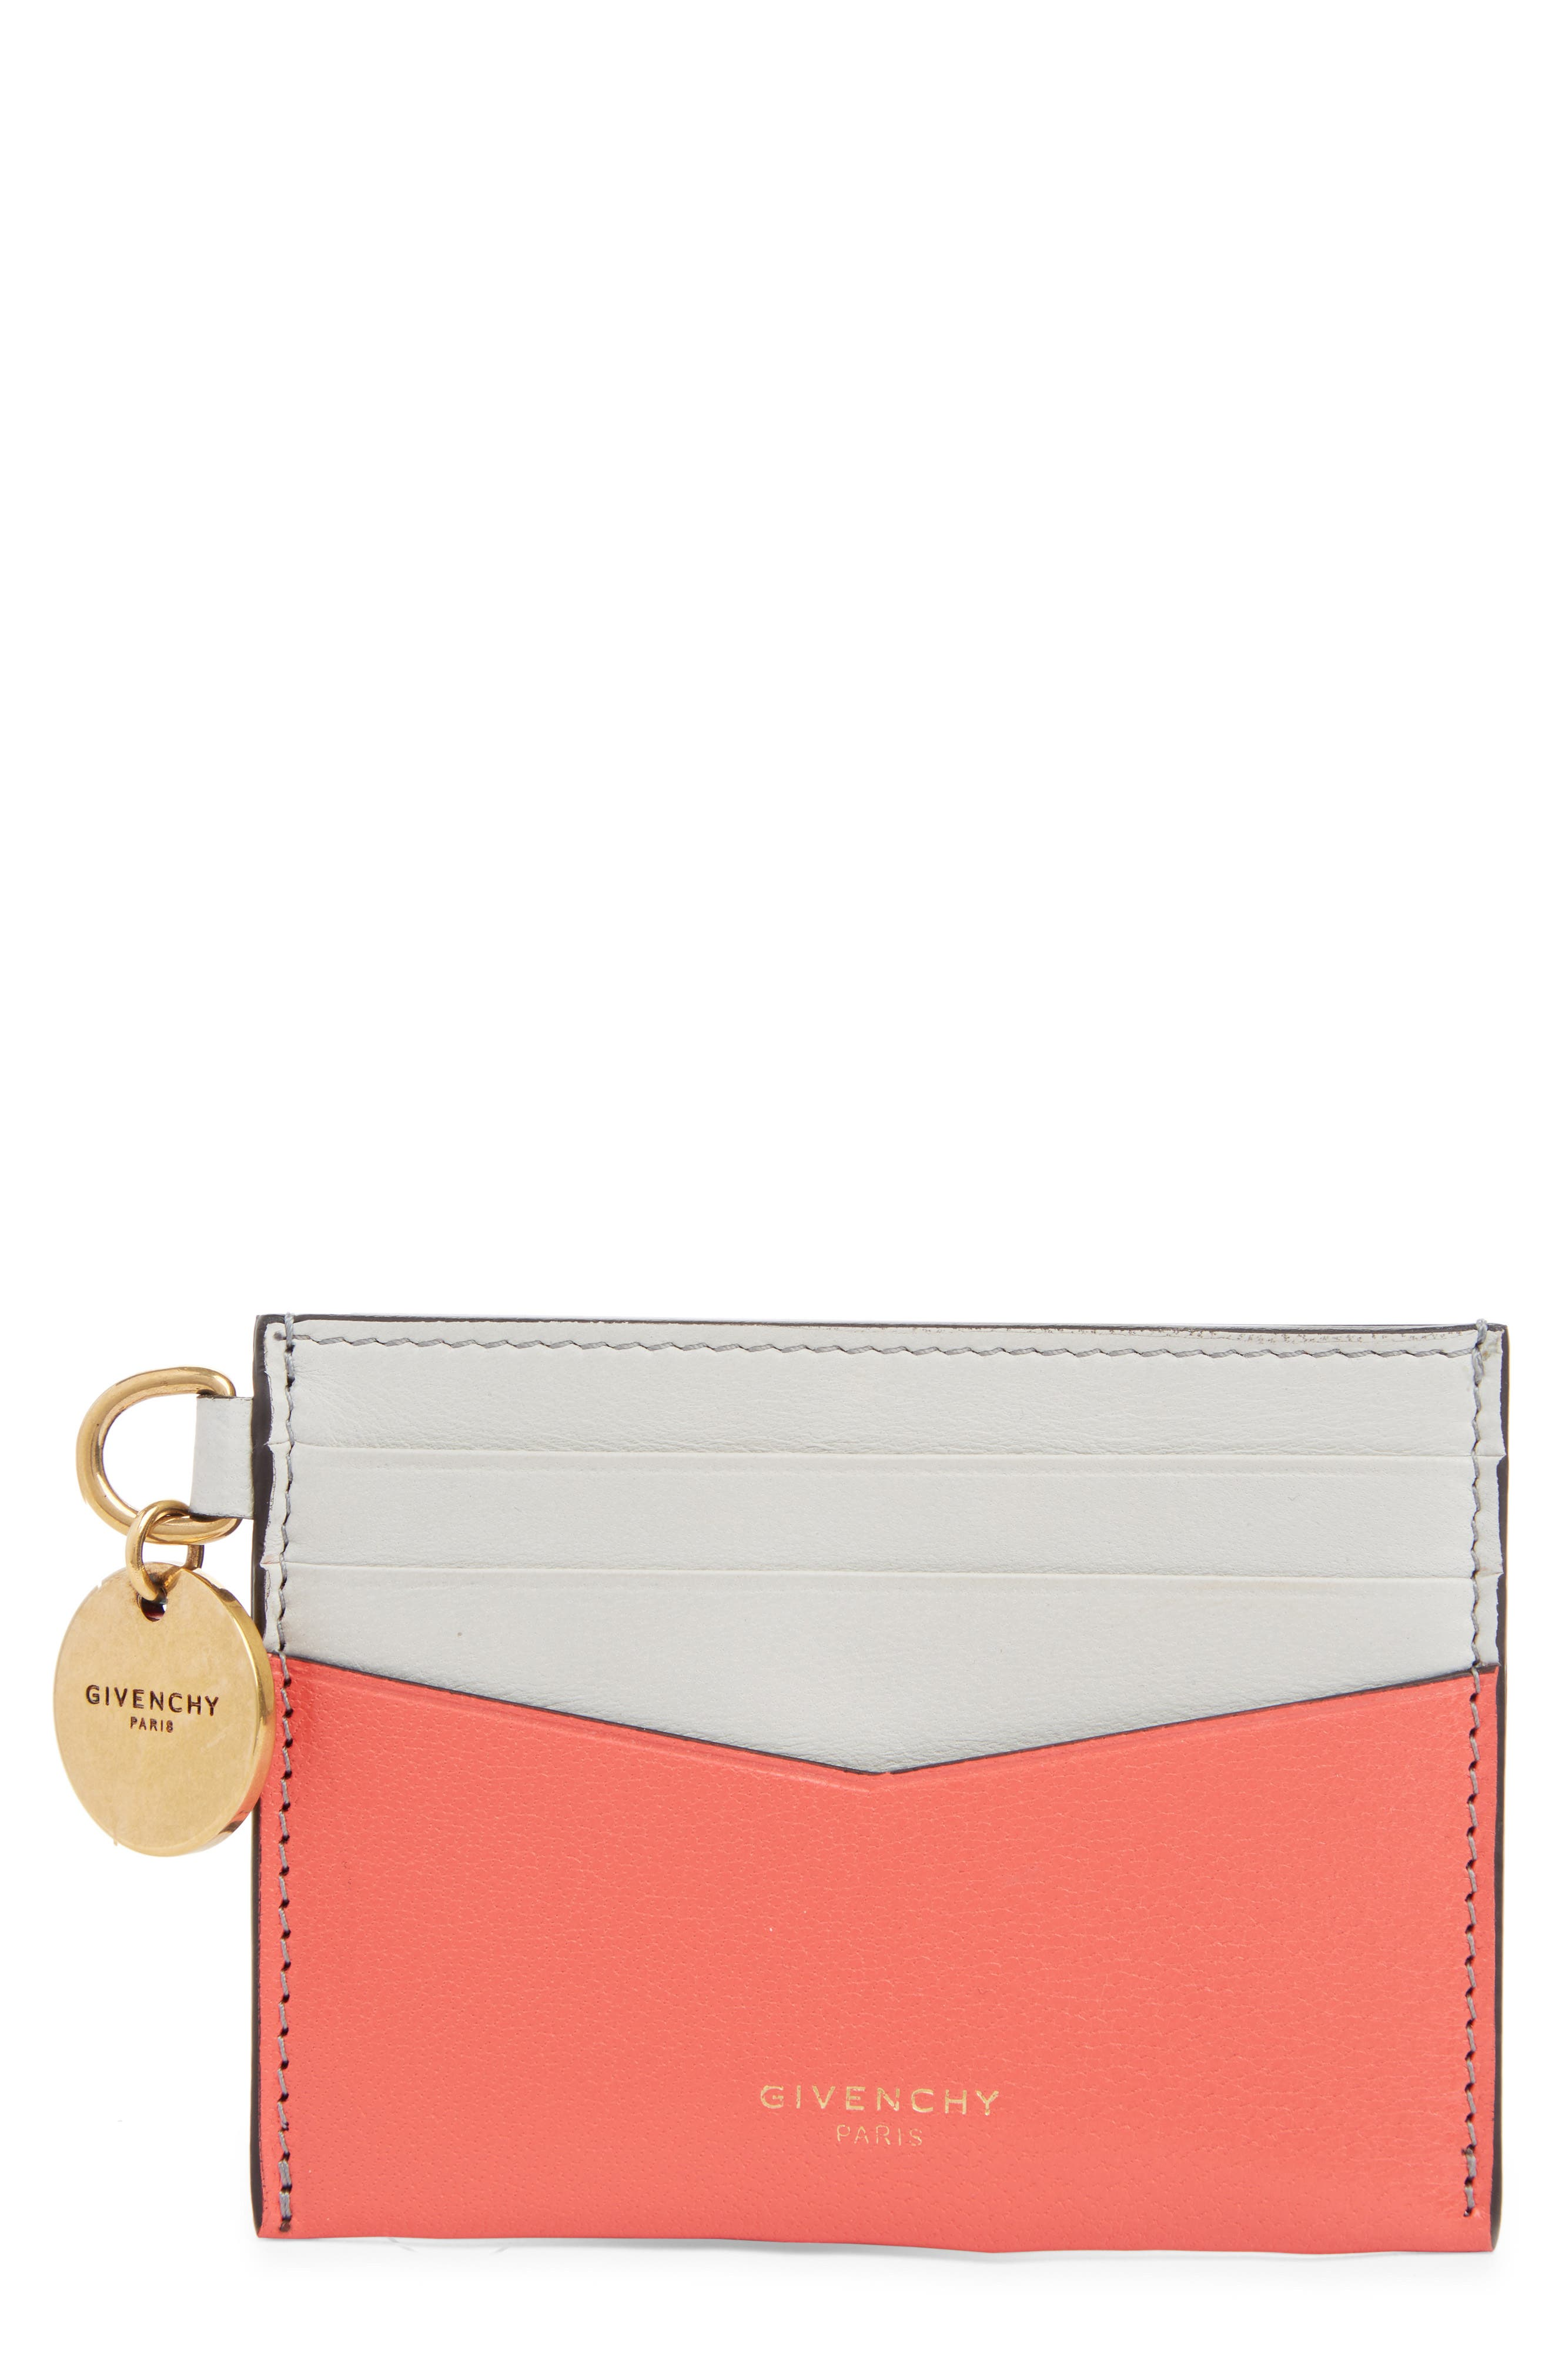 Givenchy Bicolor Leather Card Case   Nordstrom